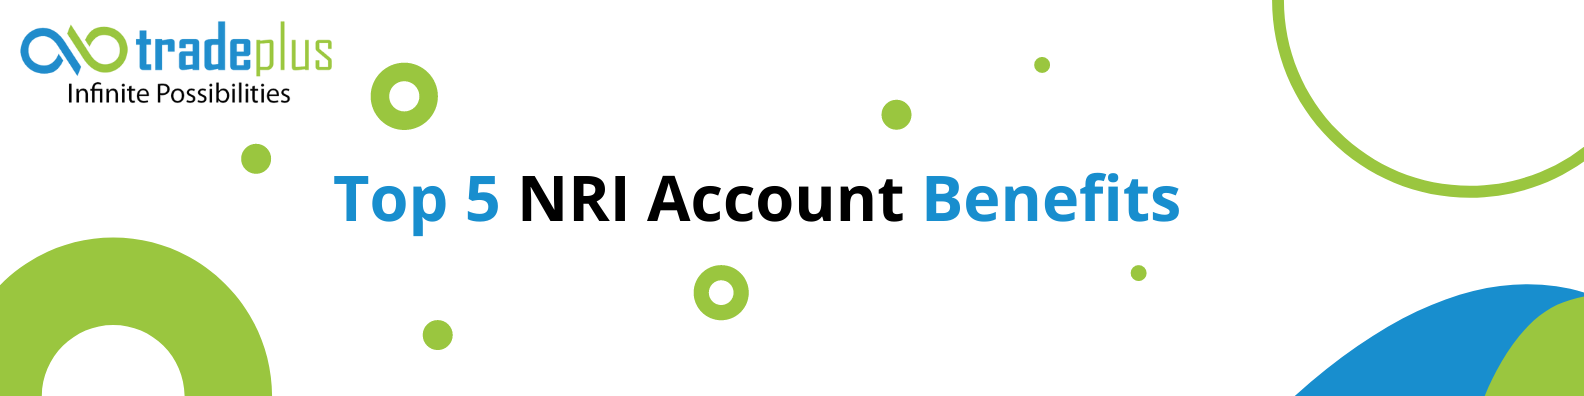 Top 5 NRI account benefits Top 5 NRI Account Benefits you needs to know